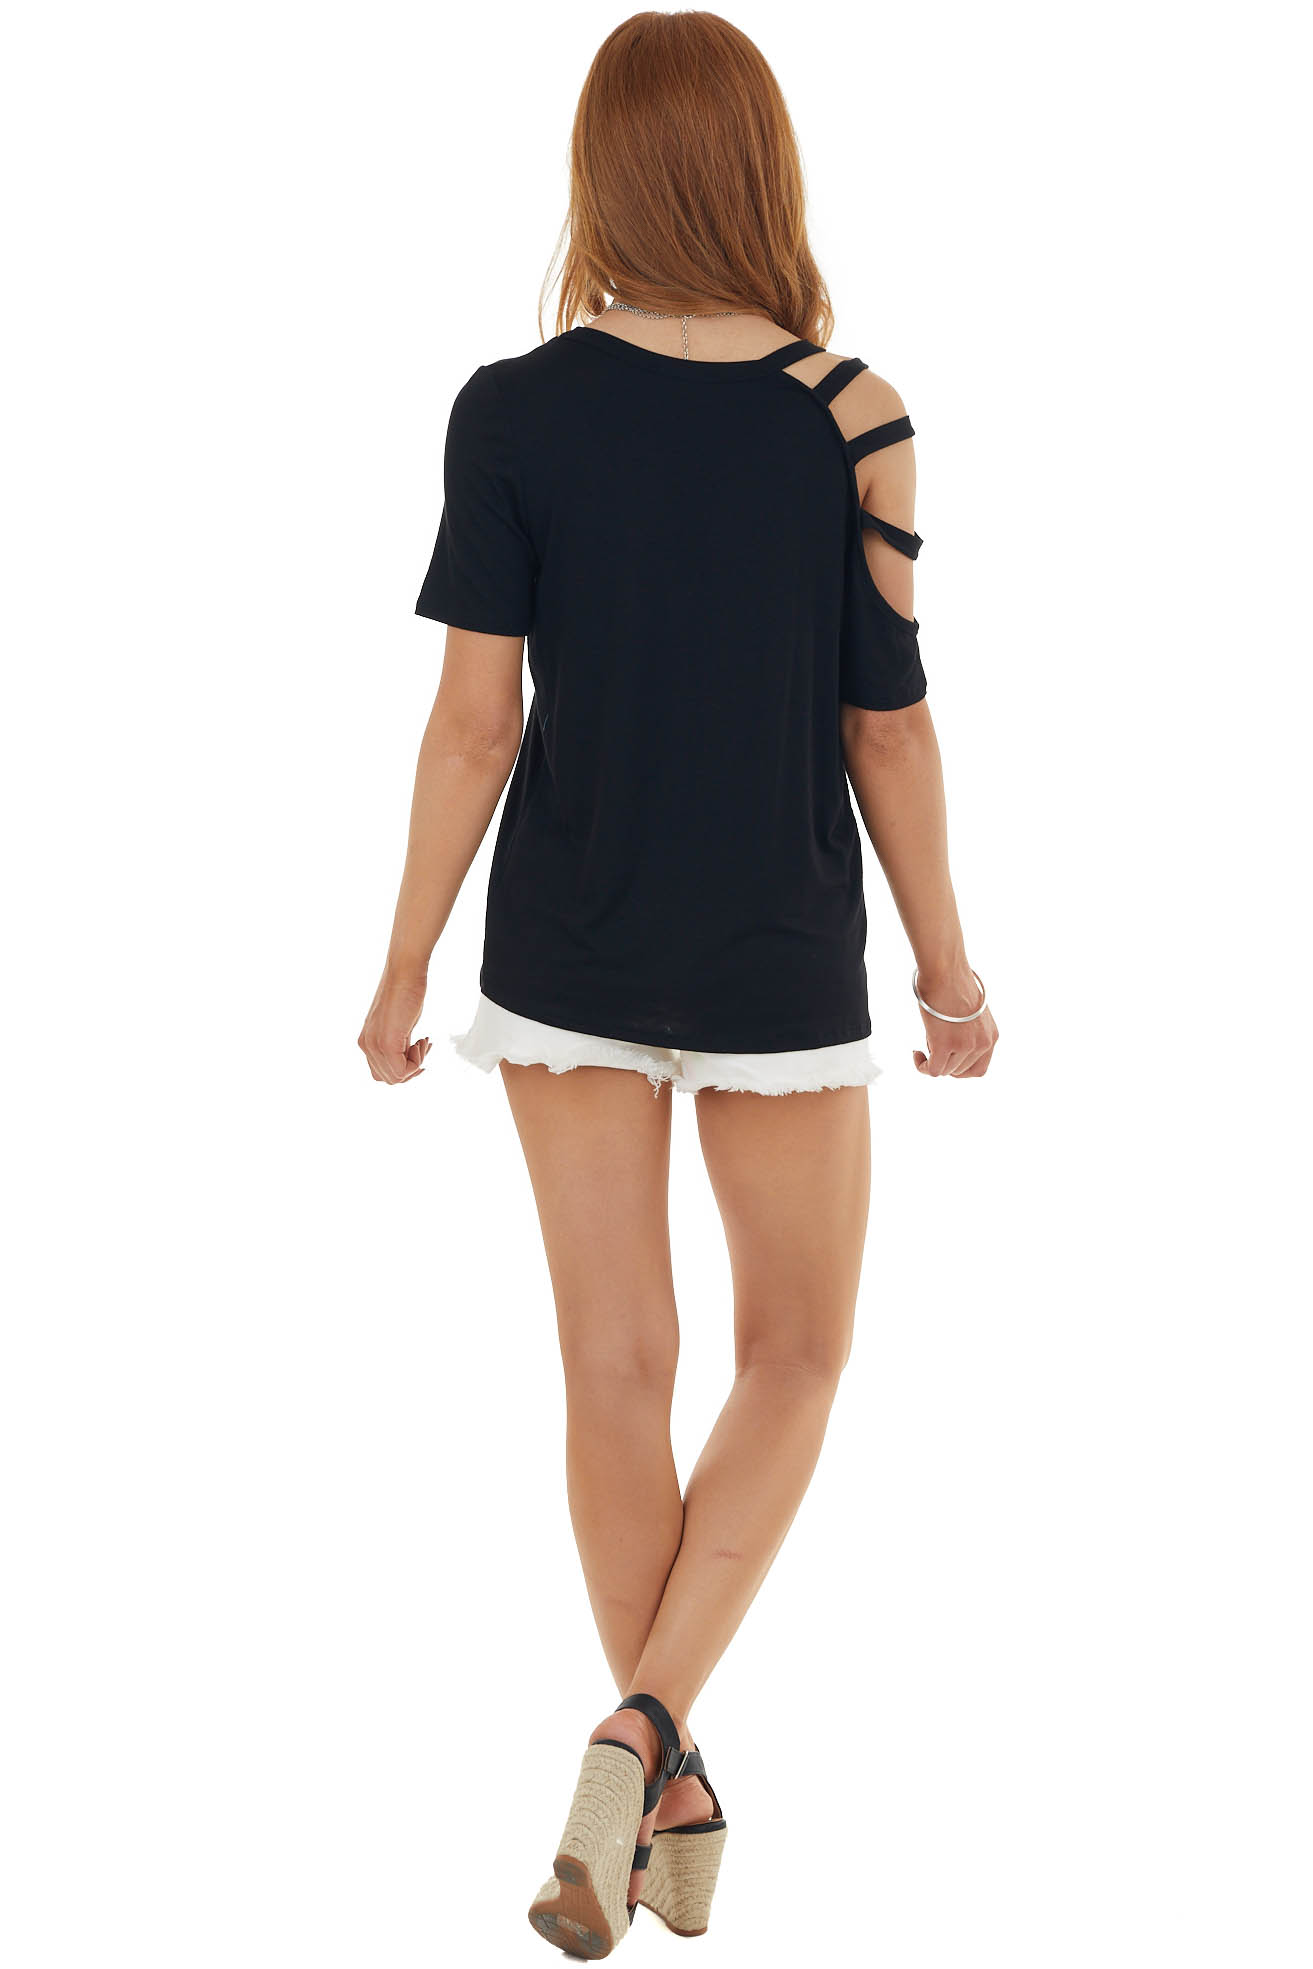 Black One Caged Sleeve Soft Short Sleeve Knit Top